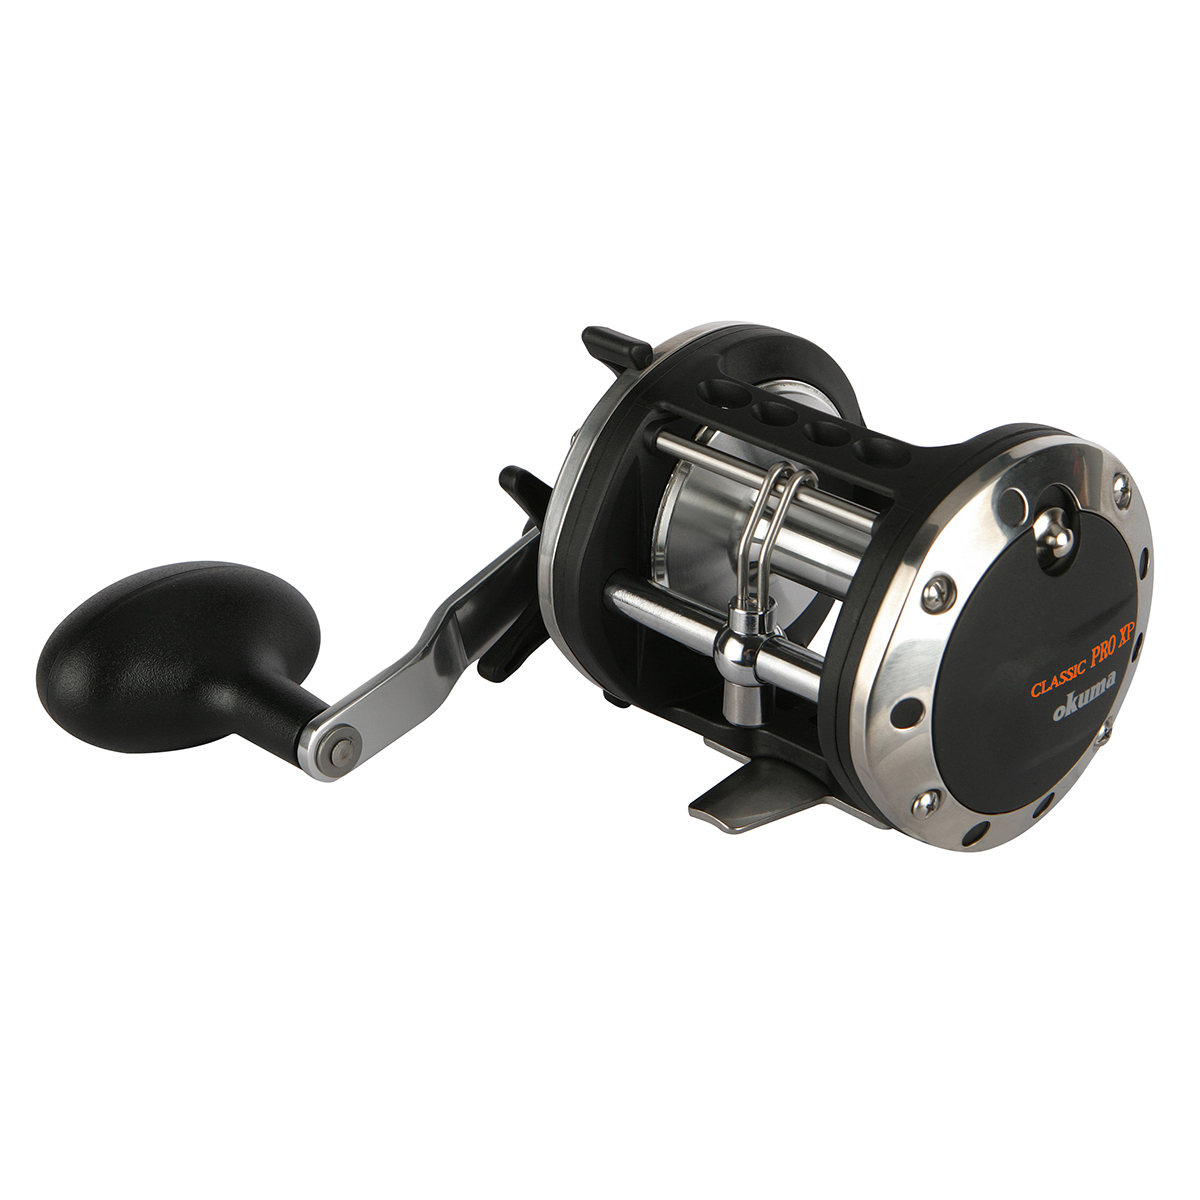 Classic Pro Star Drag Reel - Okuma Classic Pro Star Drag Reel-Stainless steel reel foot for strength-Aluminum power handle with T-style knobs-Stainless steel levelwind line guide system